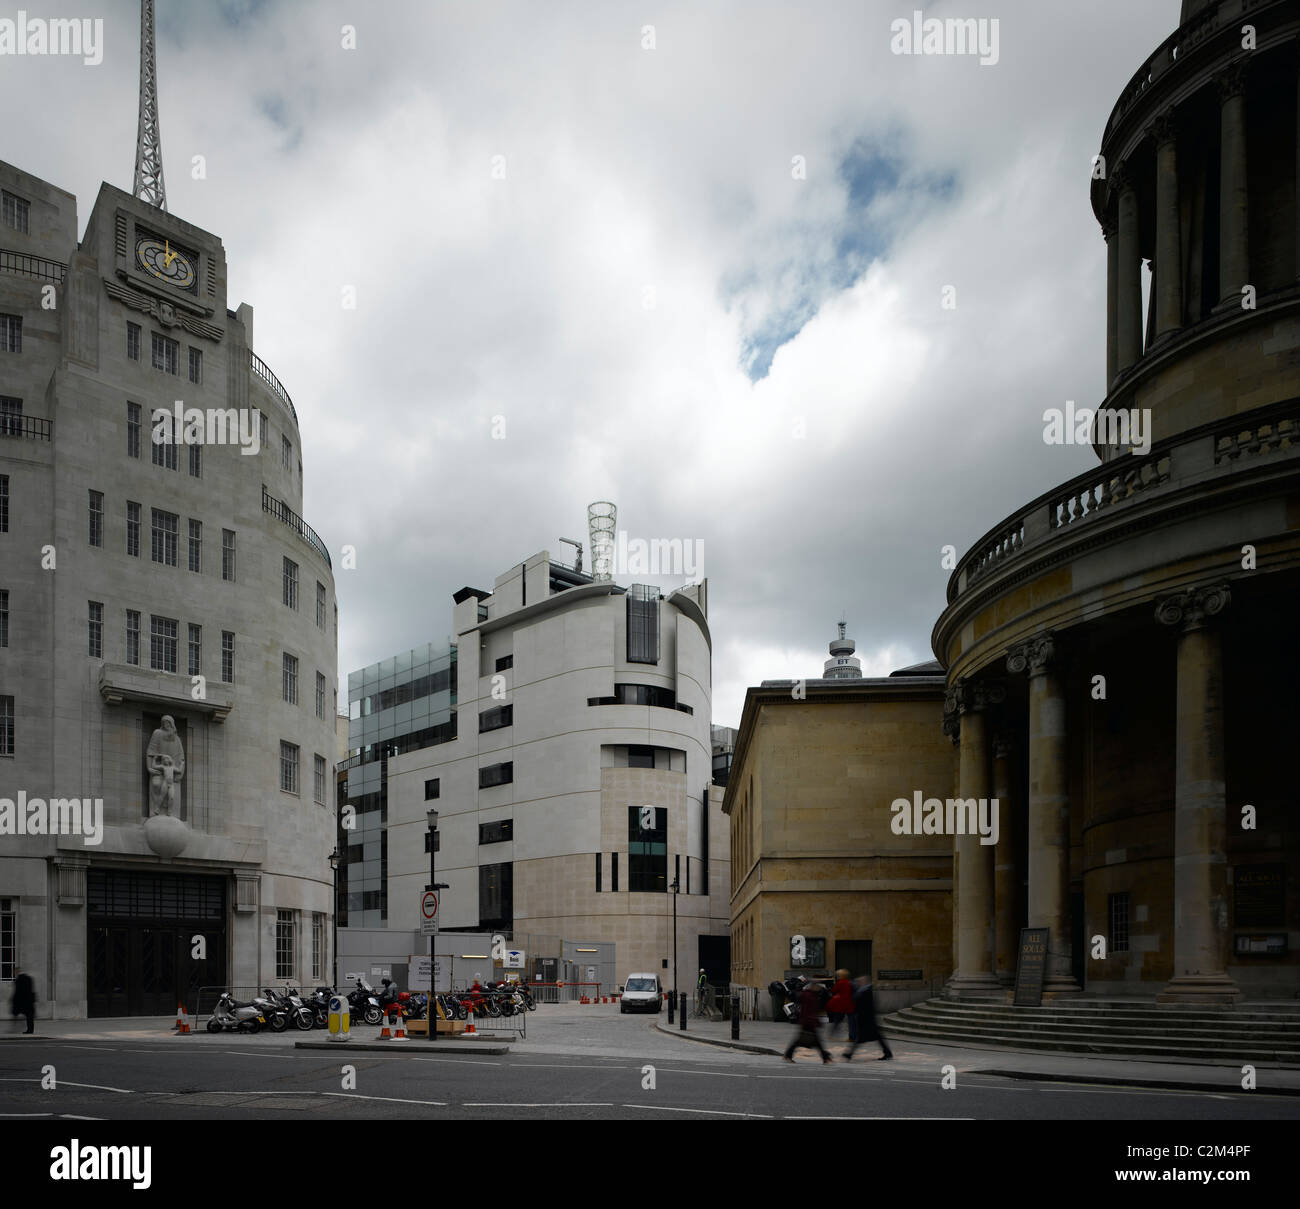 BBC Broadcasting House and Portland Place, London. - Stock Image